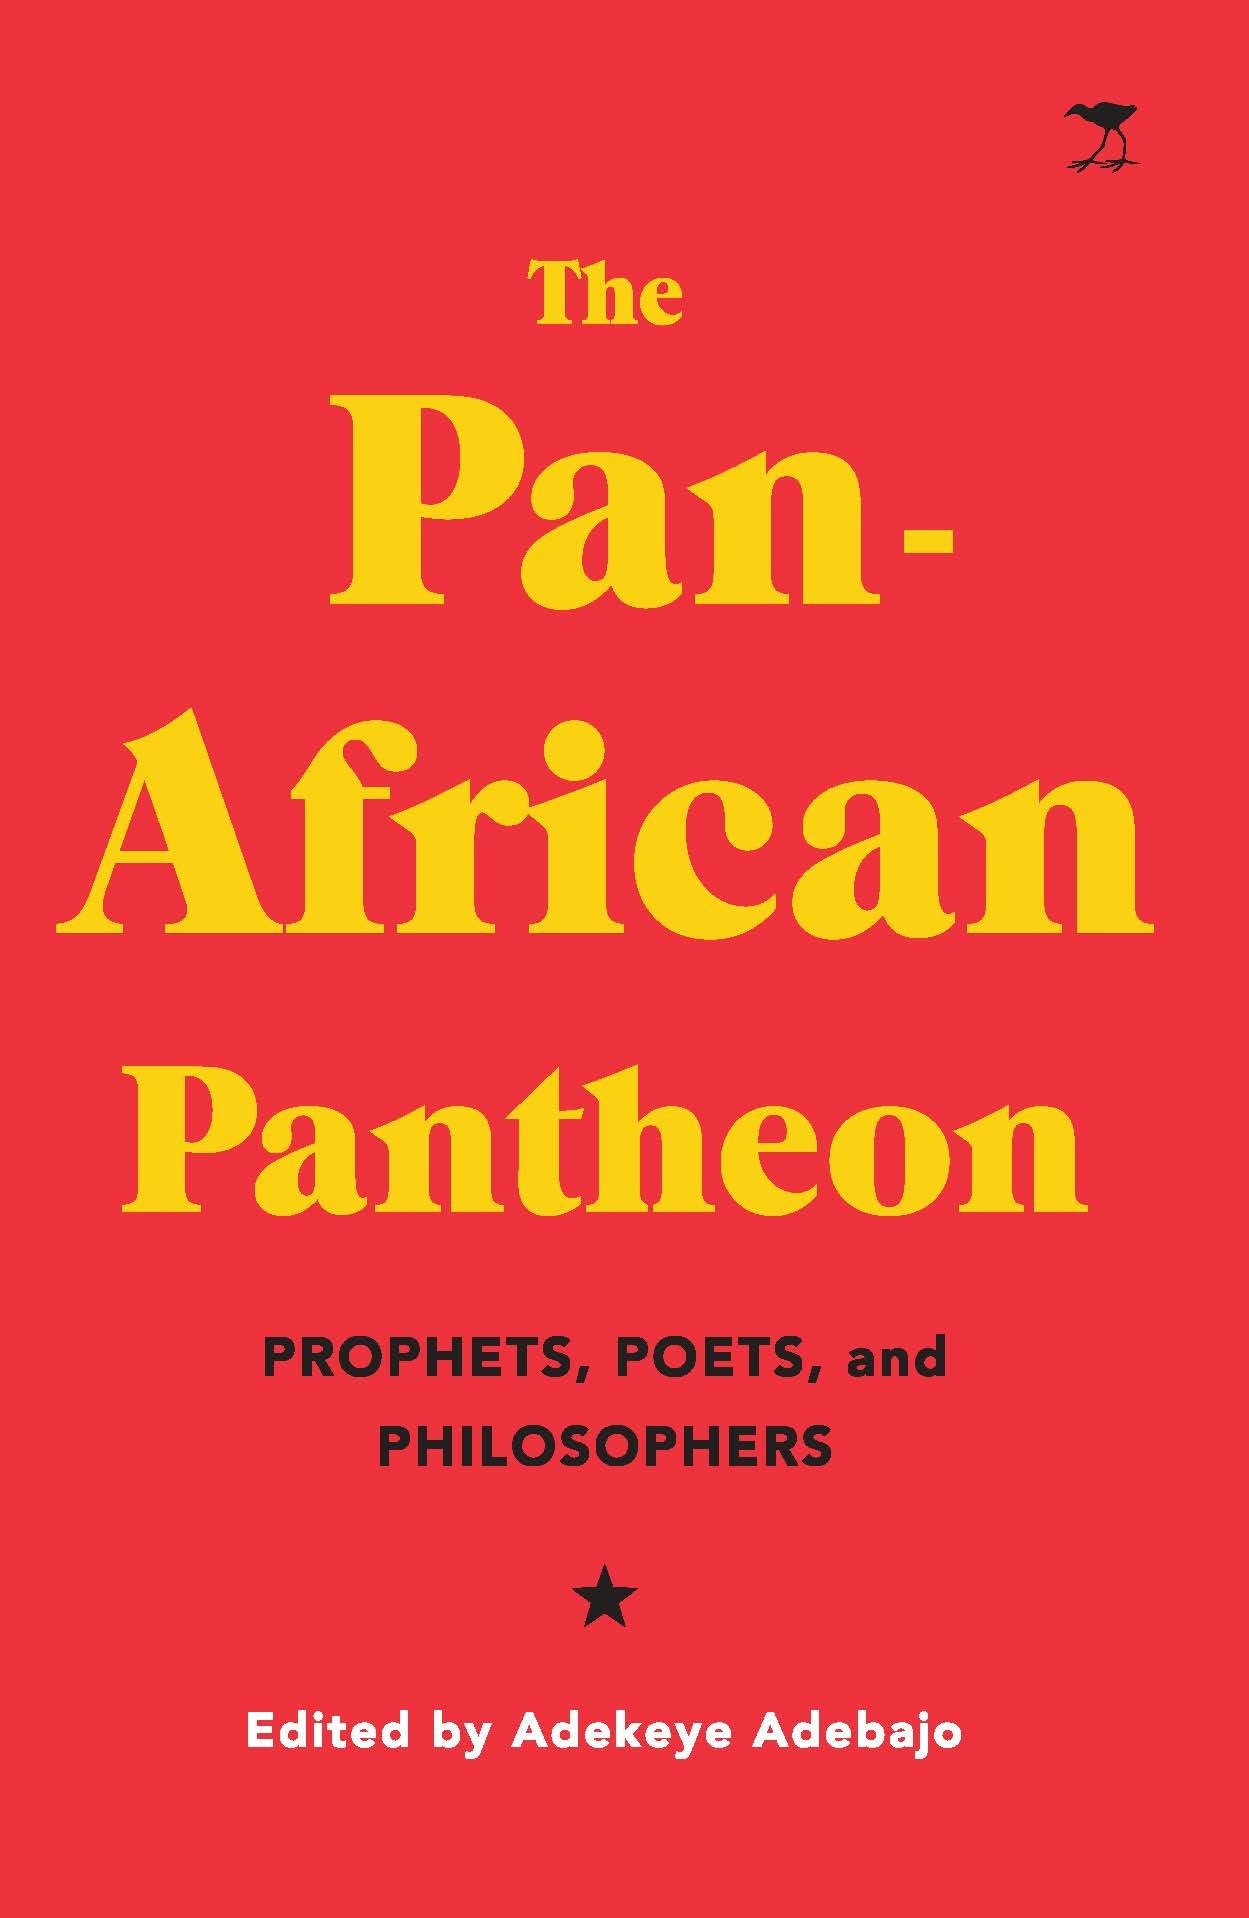 Book Review - The Pan-African Pantheon: Prophets, Poets and Philosophers